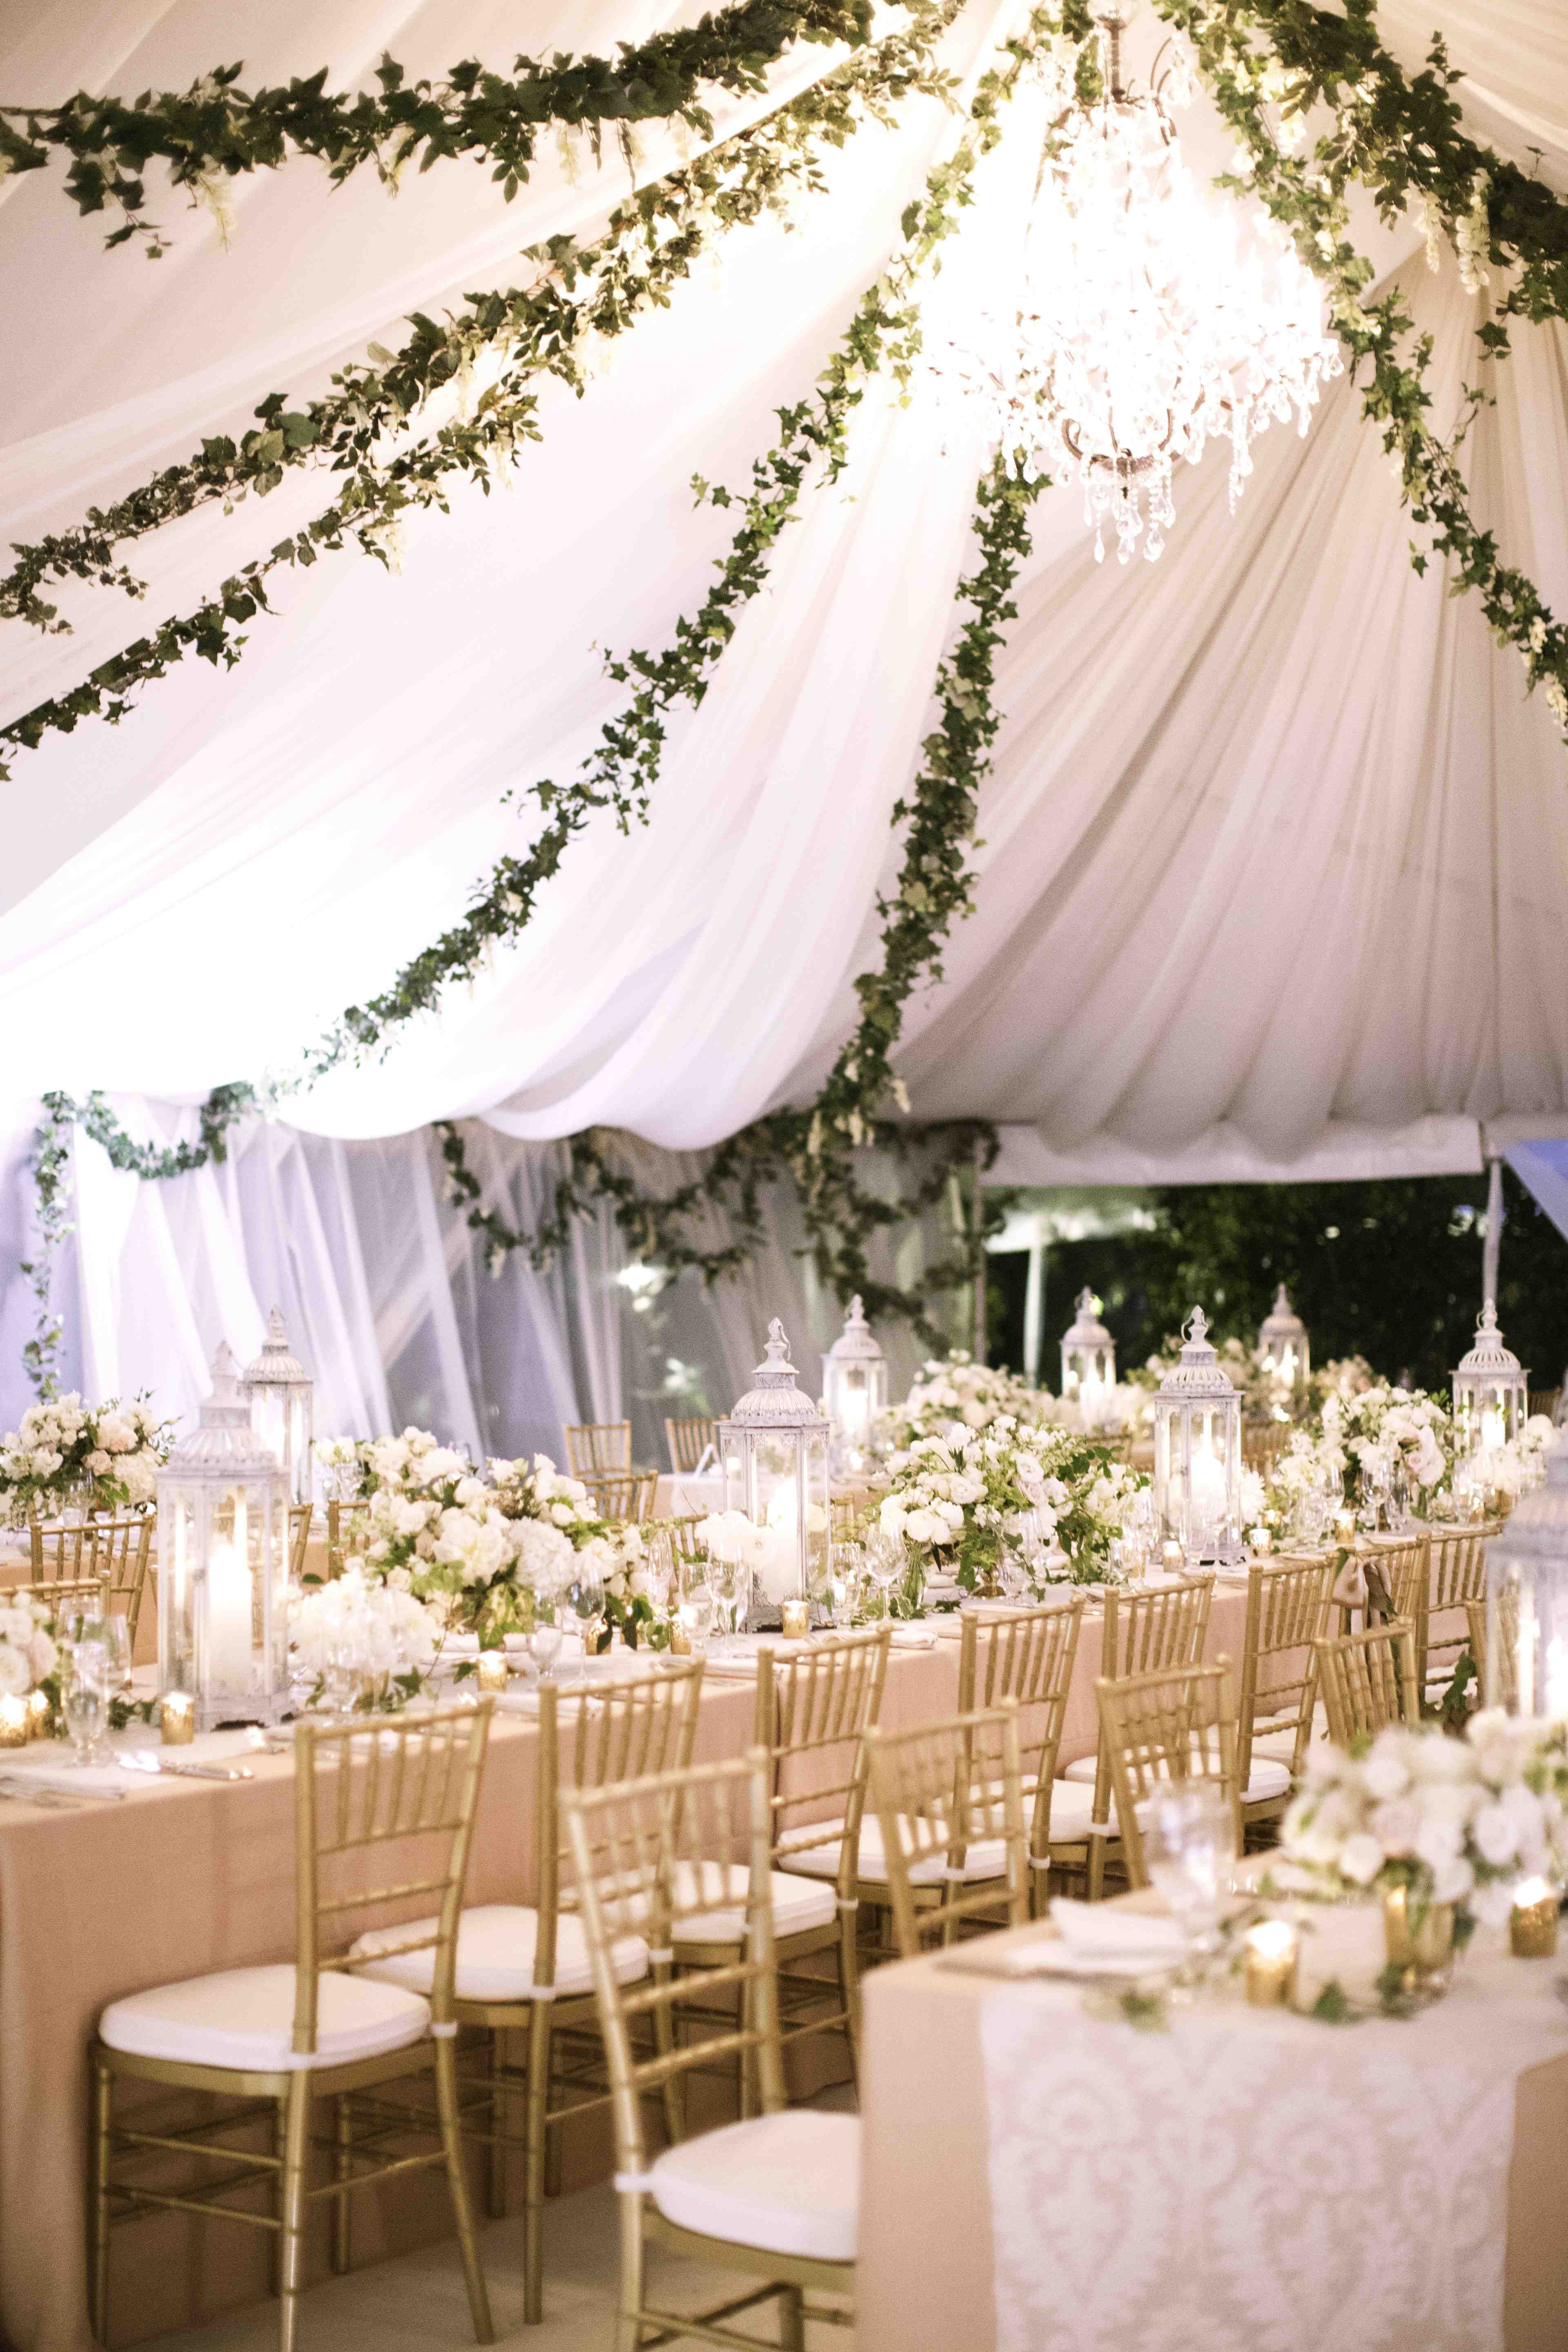 Decoration Chapiteau De Reception Stunning Tent And Decor Erin Fetherston S Wedding Reception